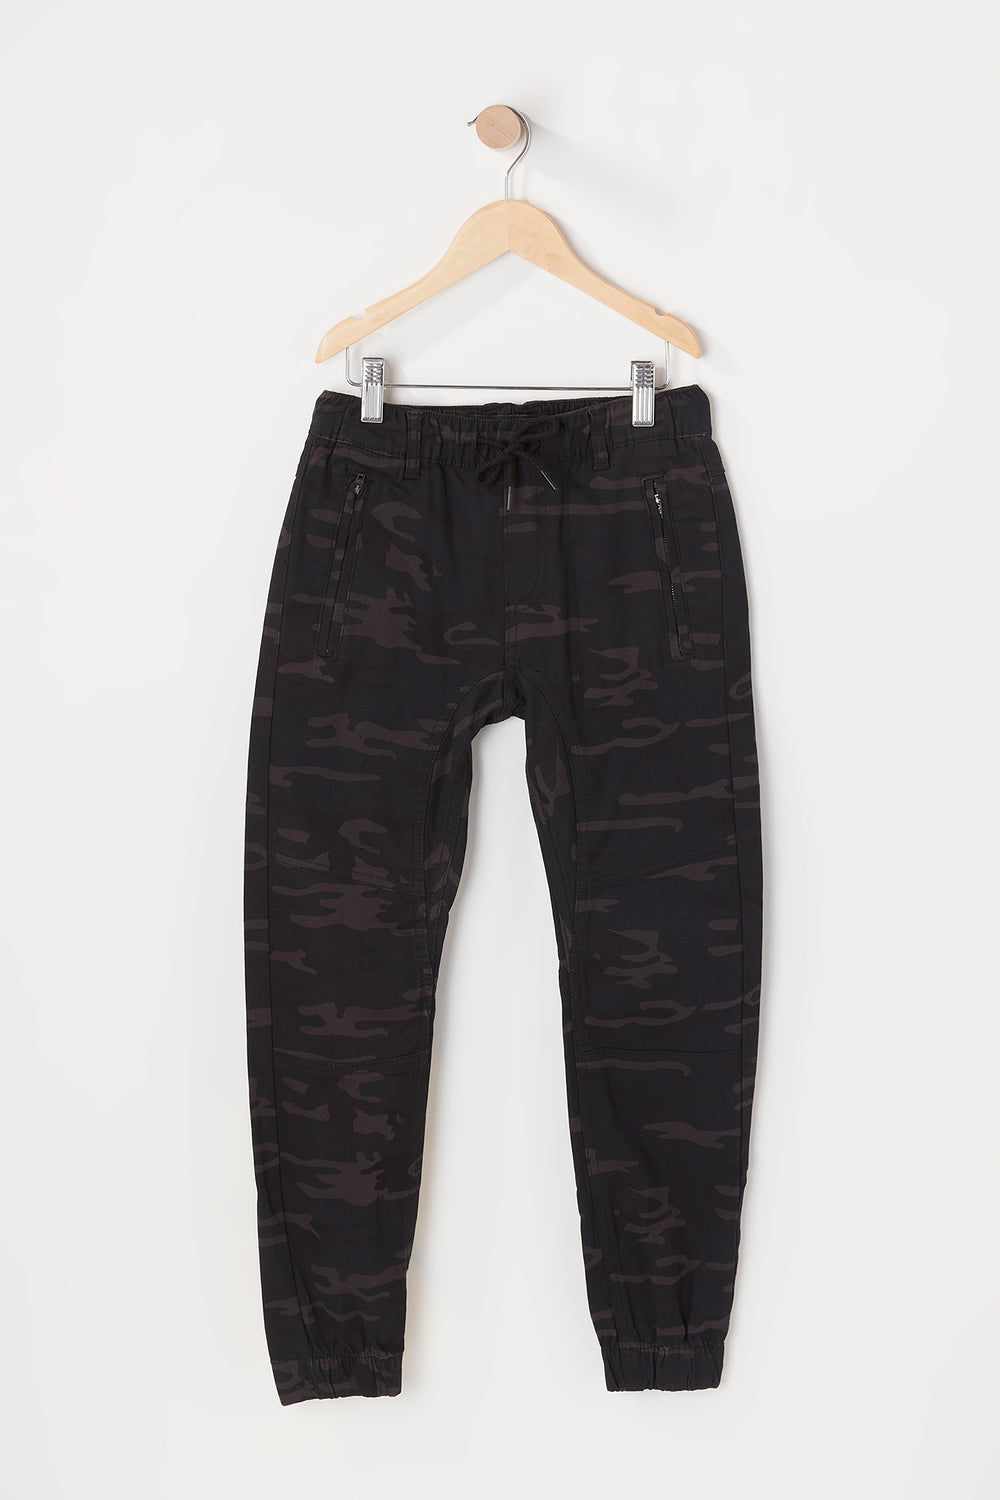 Zoo York Youth Camo Jogger Black with White